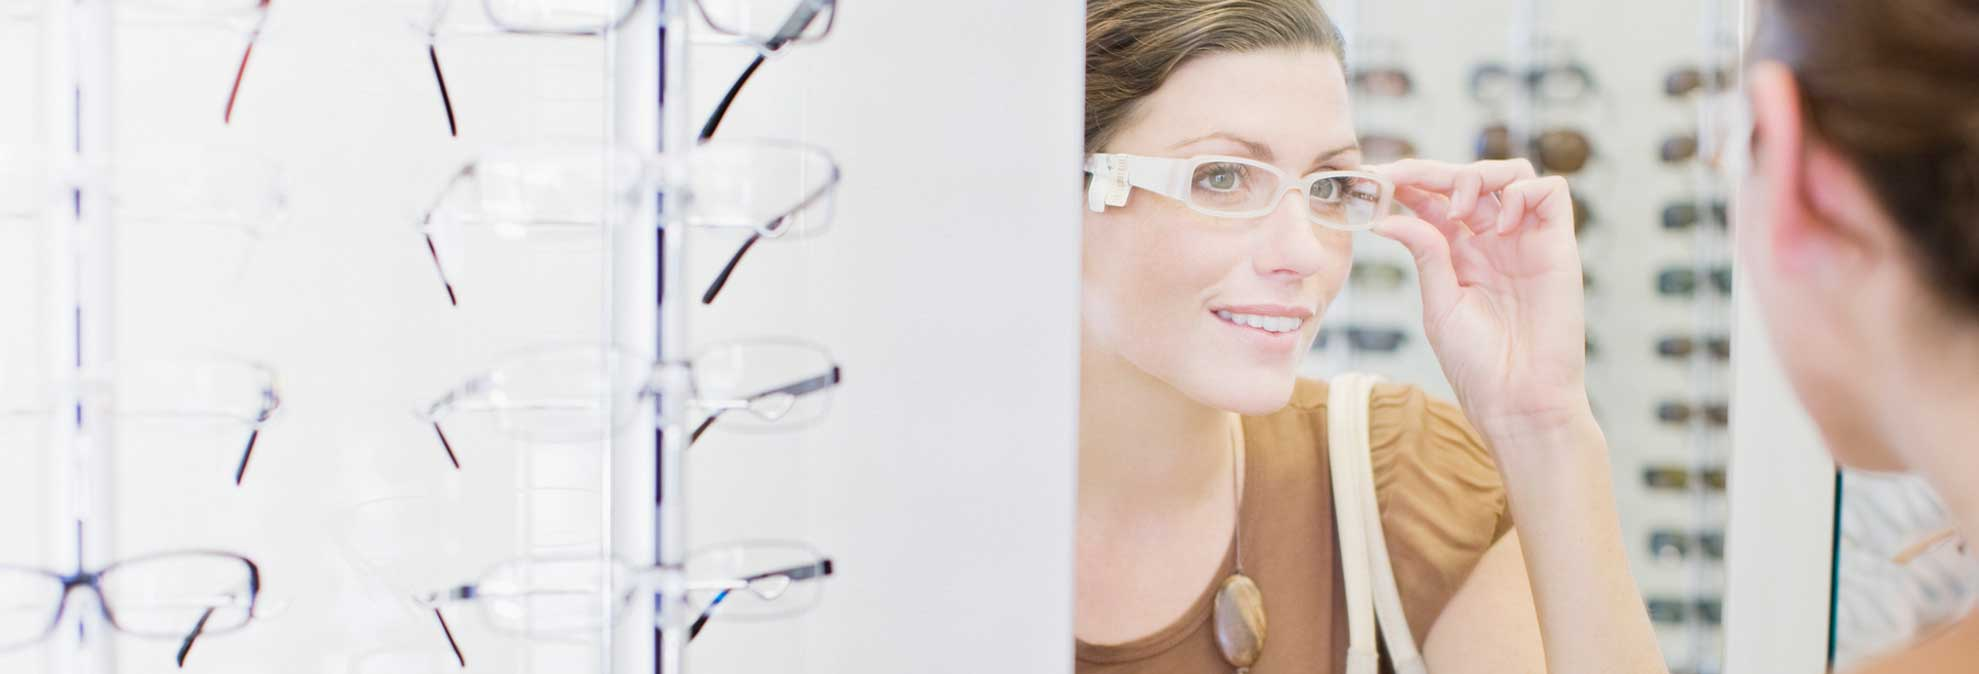 330cb956e0e Best Eyeglass Store Buying Guide - Consumer Reports